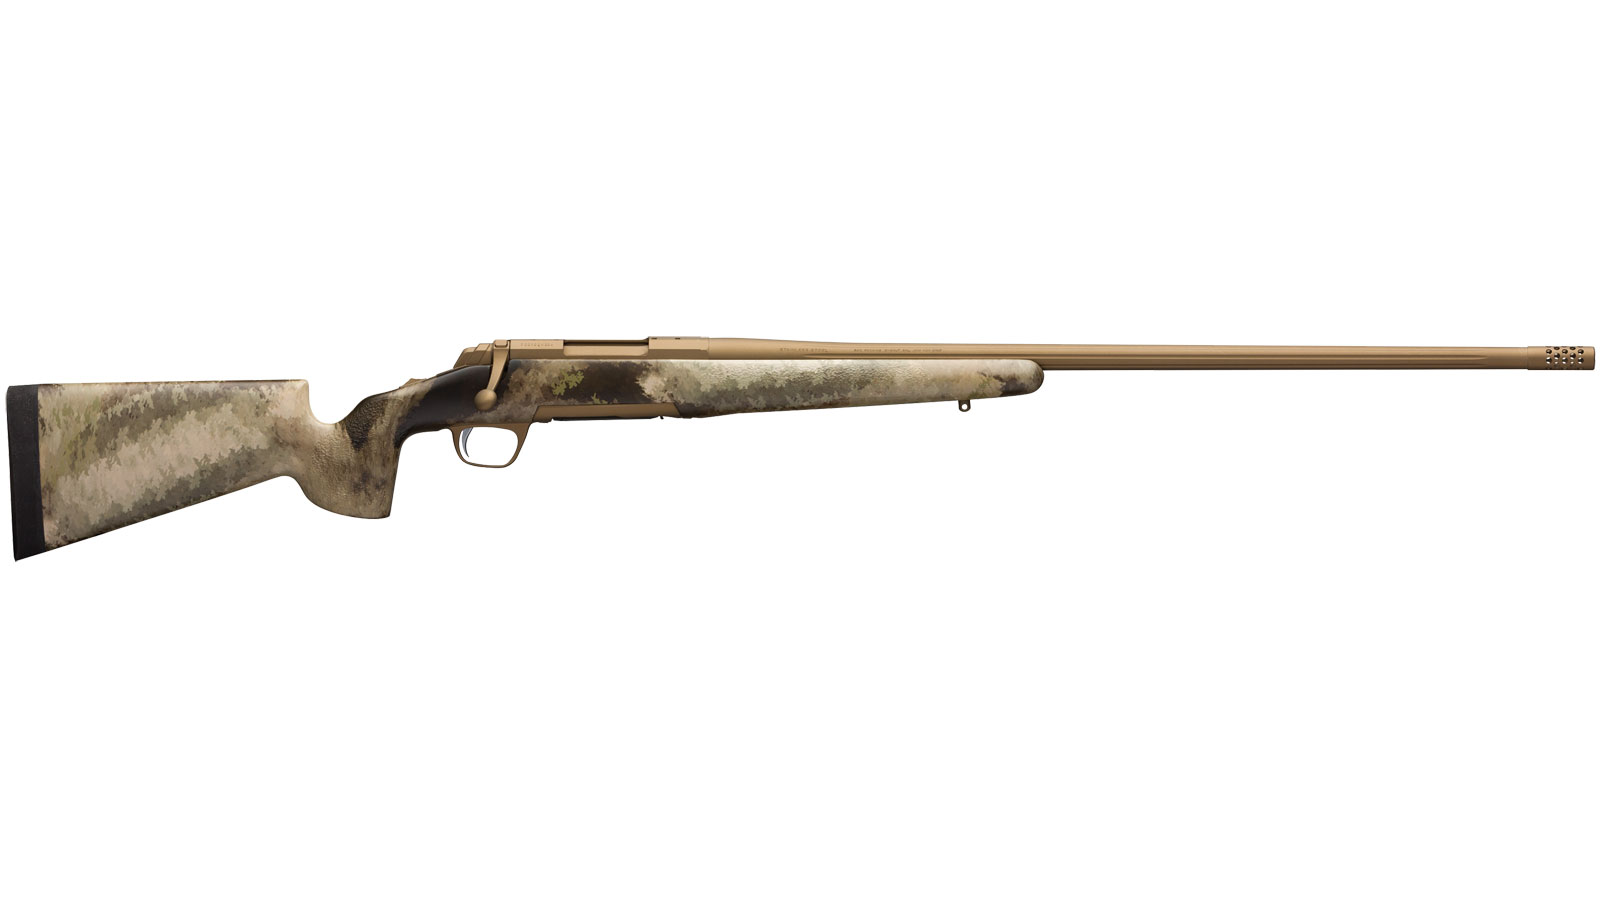 Browning 035395291 X-Bolt Hells Canyon Speed Long Range Bolt 6mm Creedmoor 26 3+1 McMillan Game Scout A-TACS AU Stk Burnt Bronze Cerakote in.